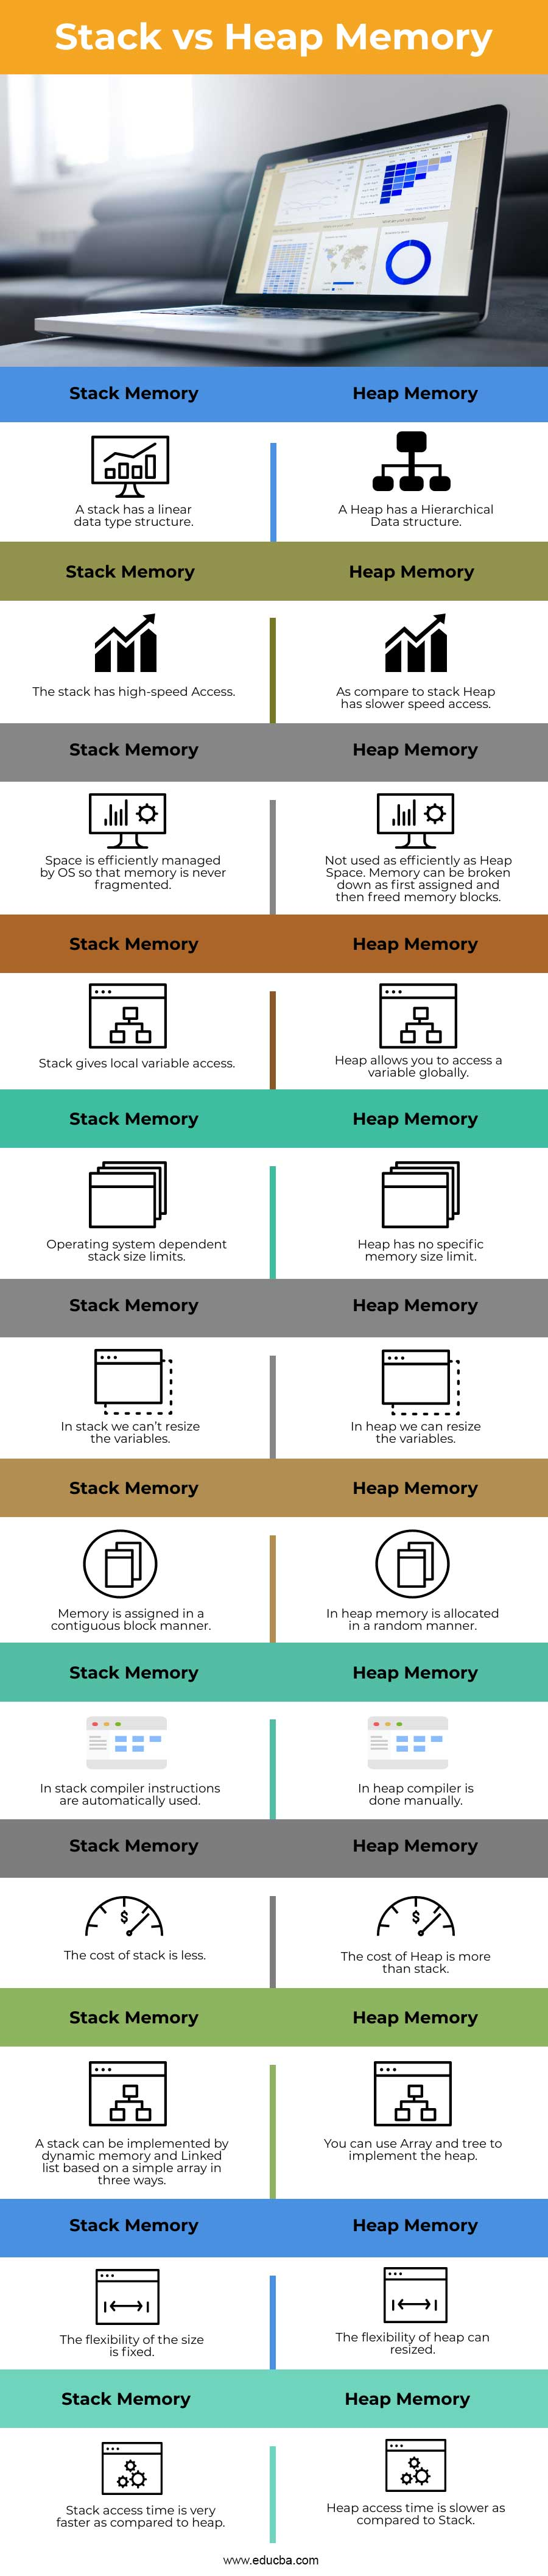 Stack-vs-Heap-Memory-info